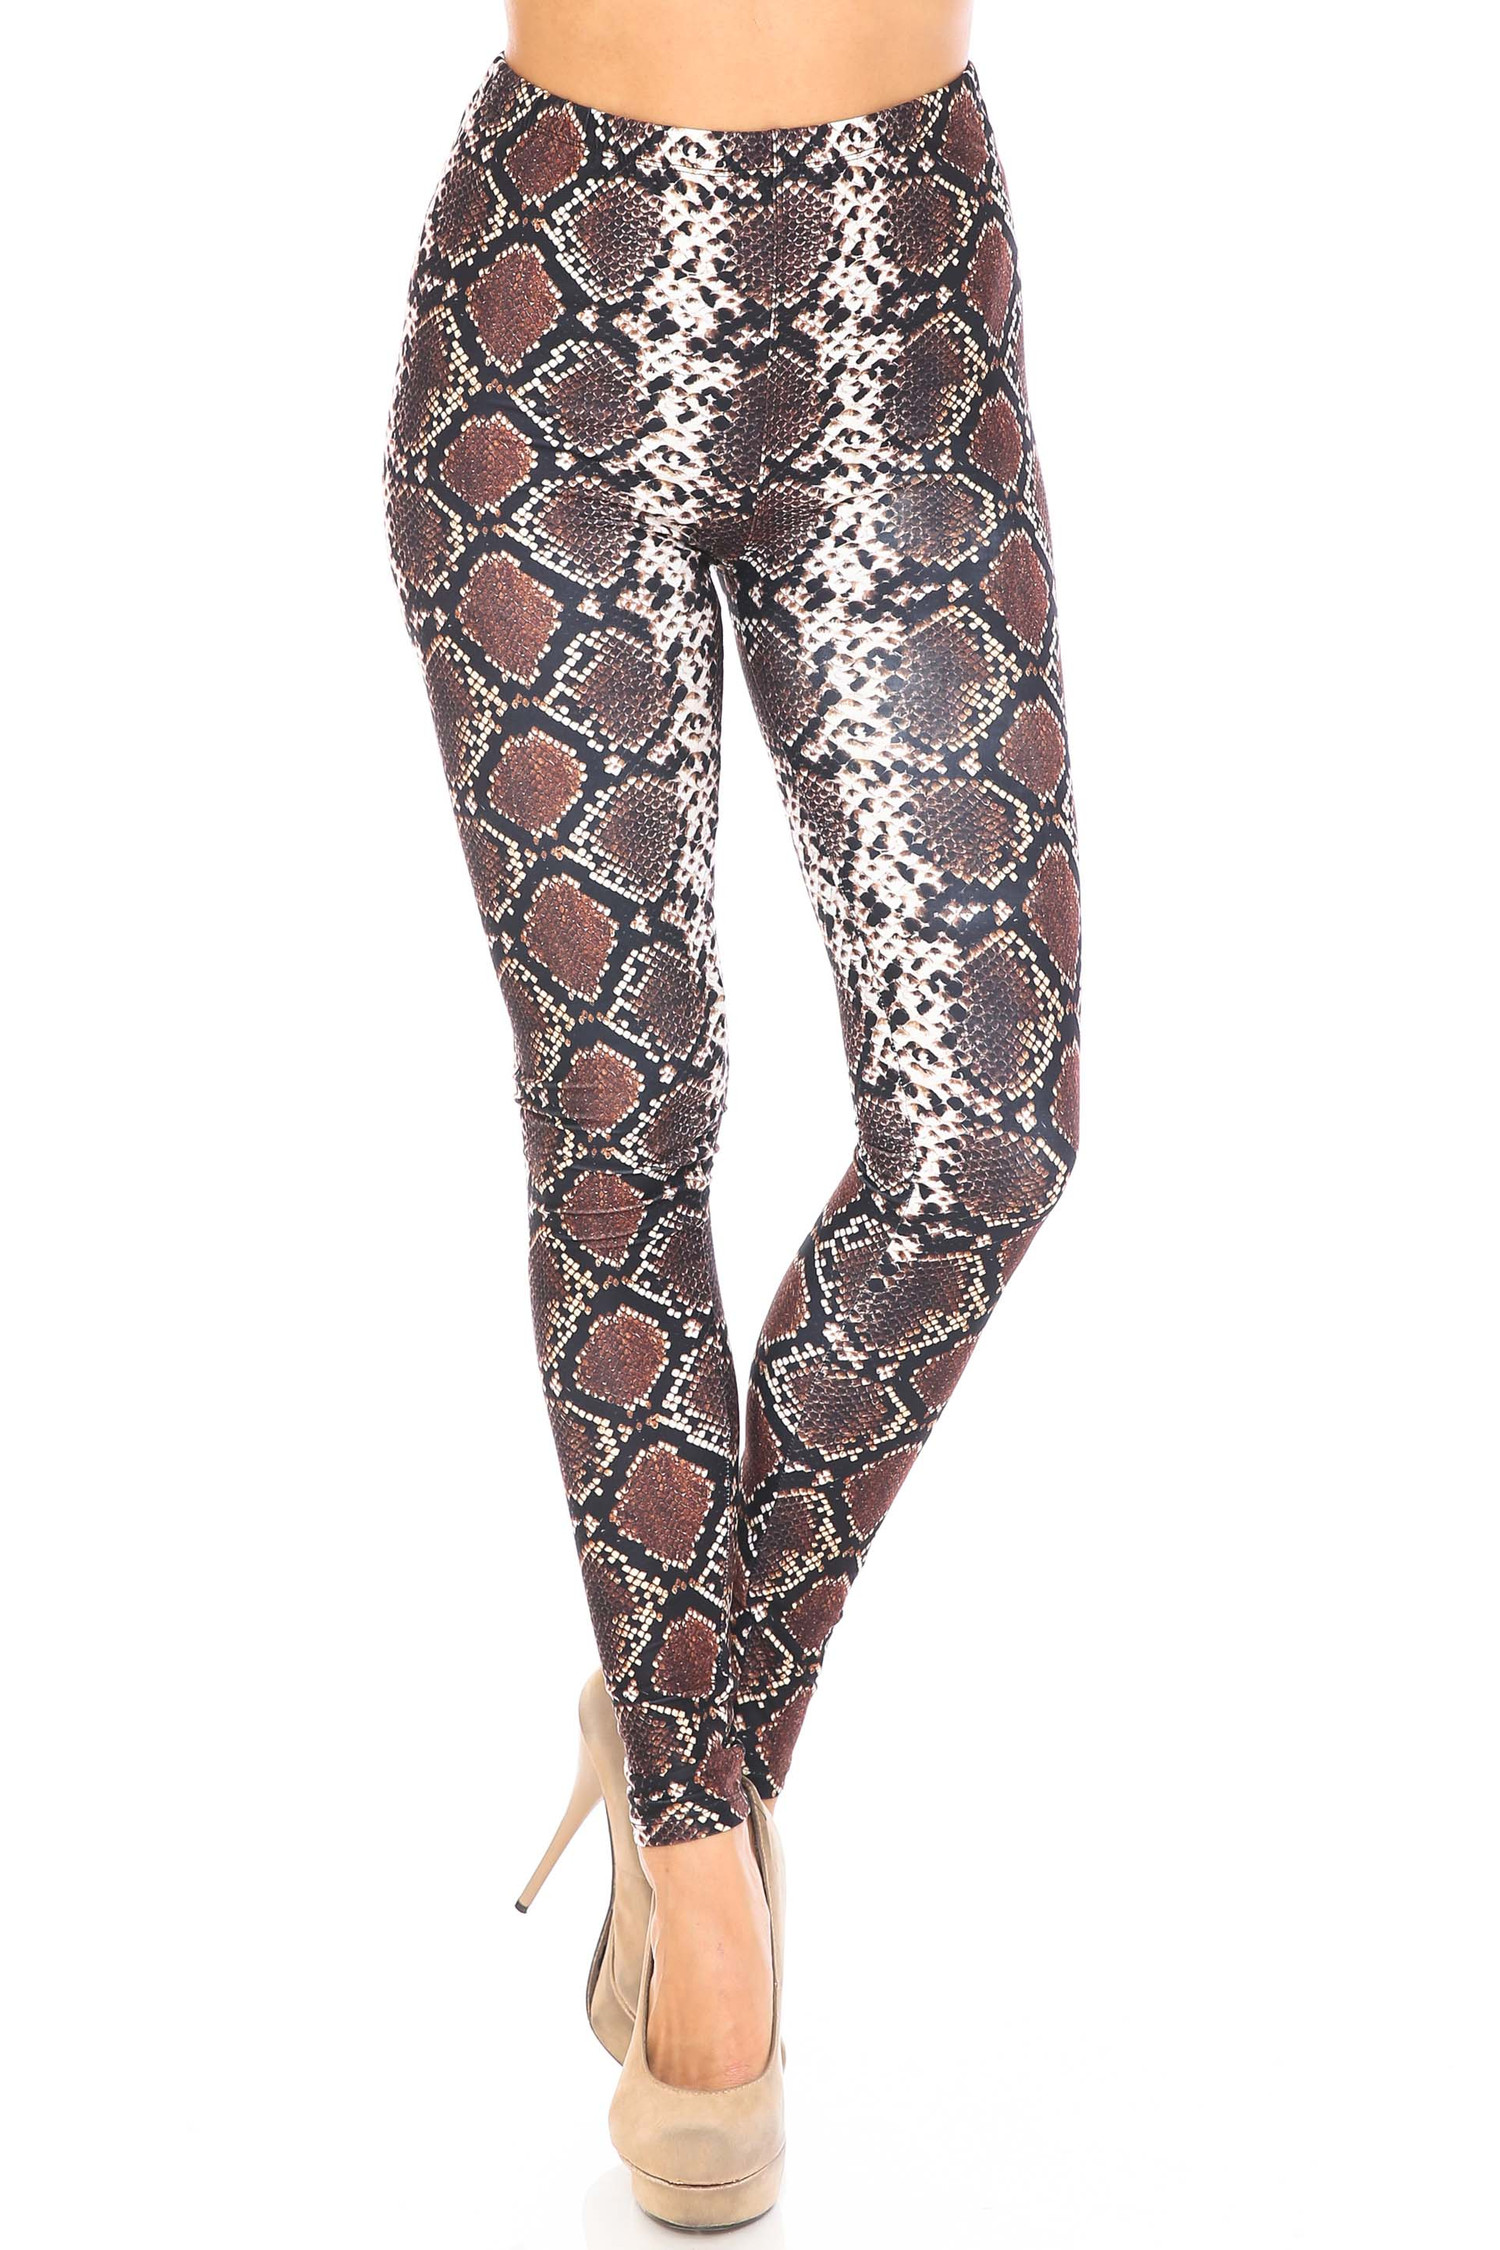 Front side image of Creamy Soft  Brown Boa Snake Plus Size Leggings - USA Fashion™